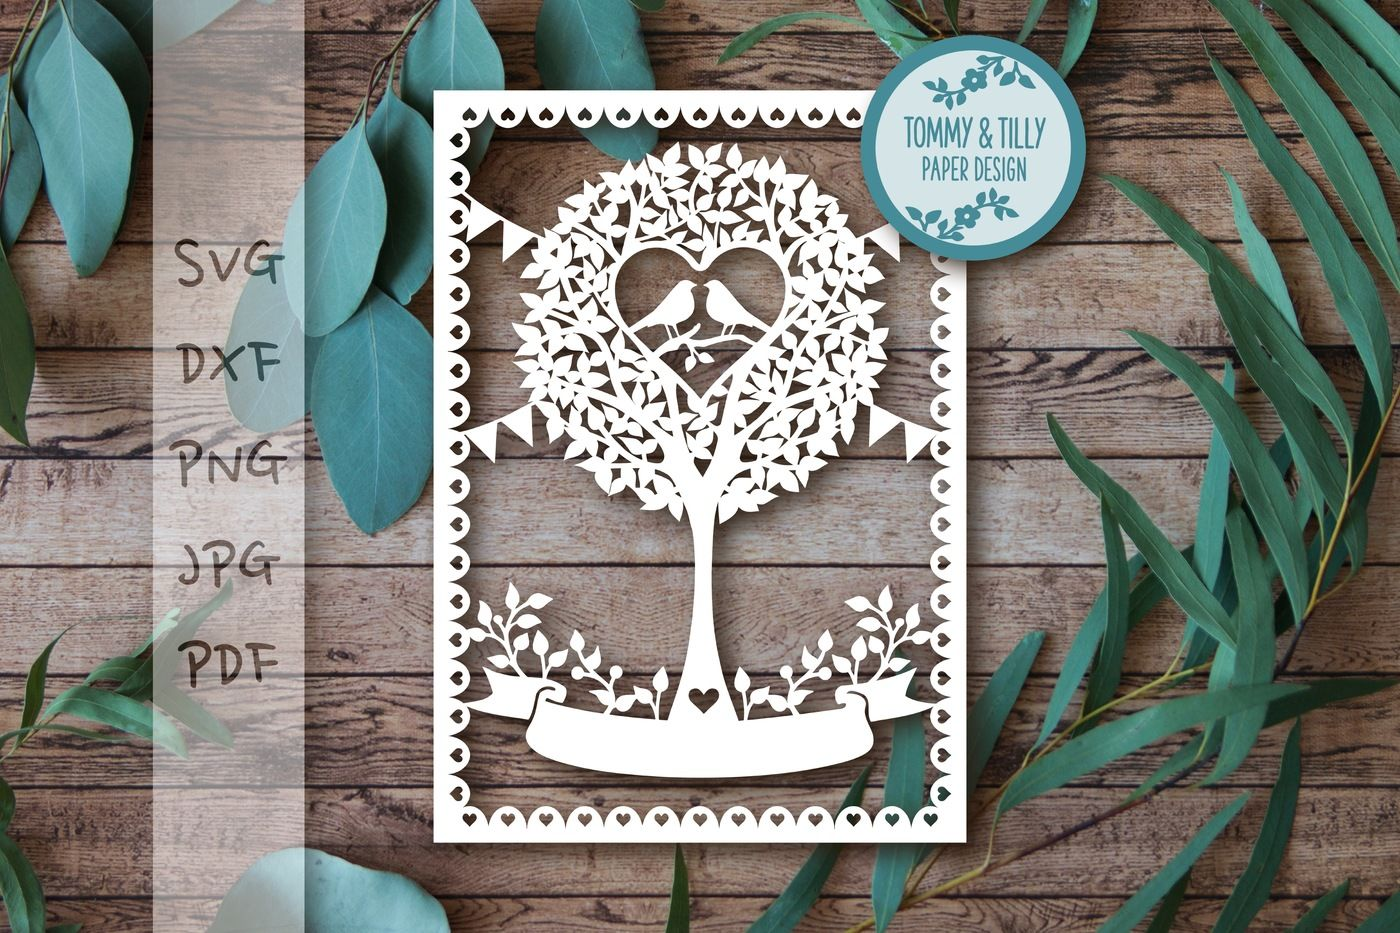 Love Birds Round Tree Svg Dxf Png Pdf Jpg By Tommy And Tilly